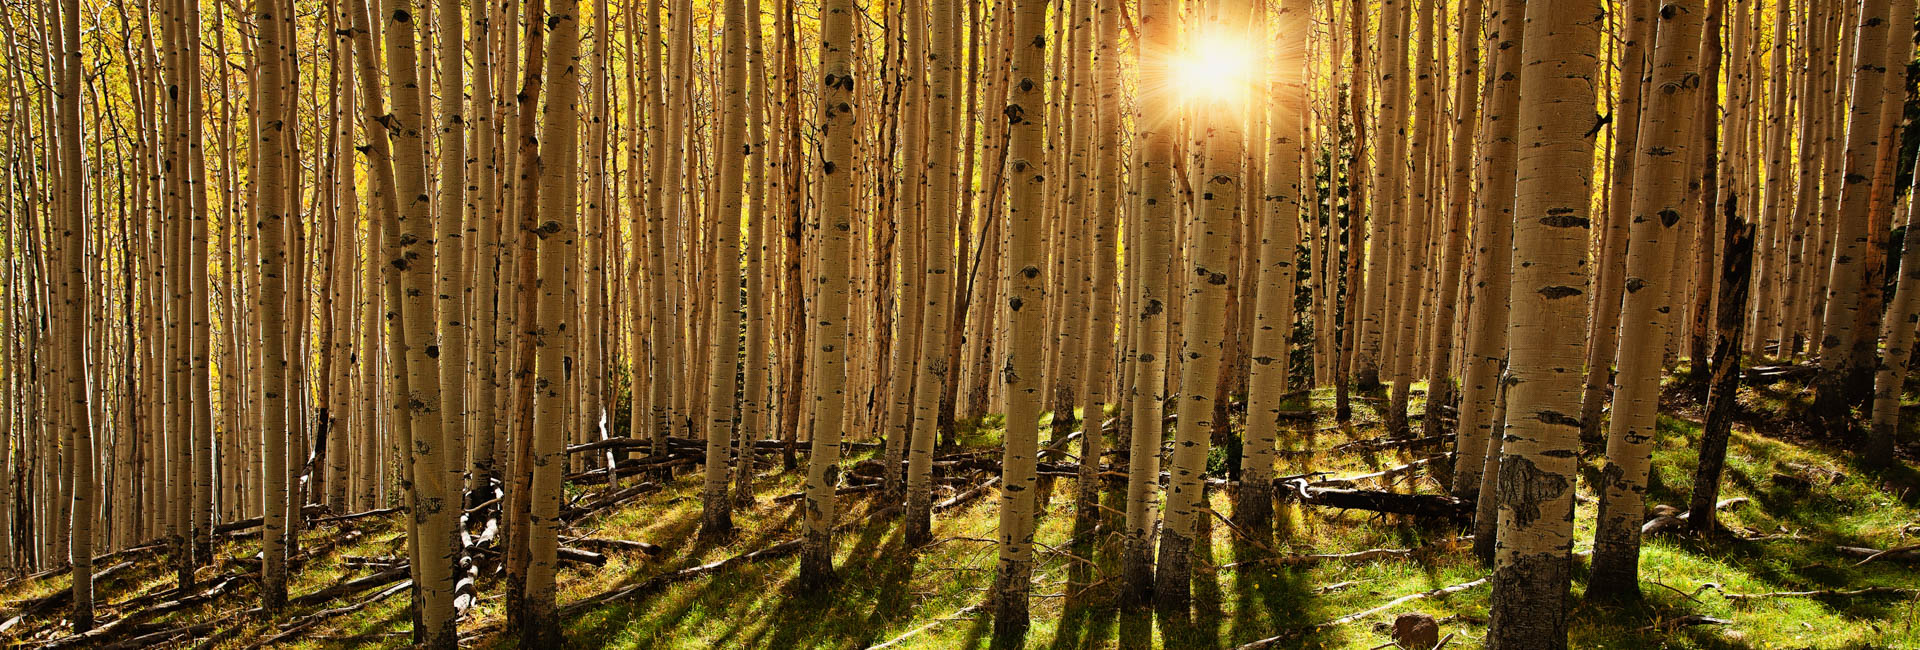 Aspens in Coconino National Forest